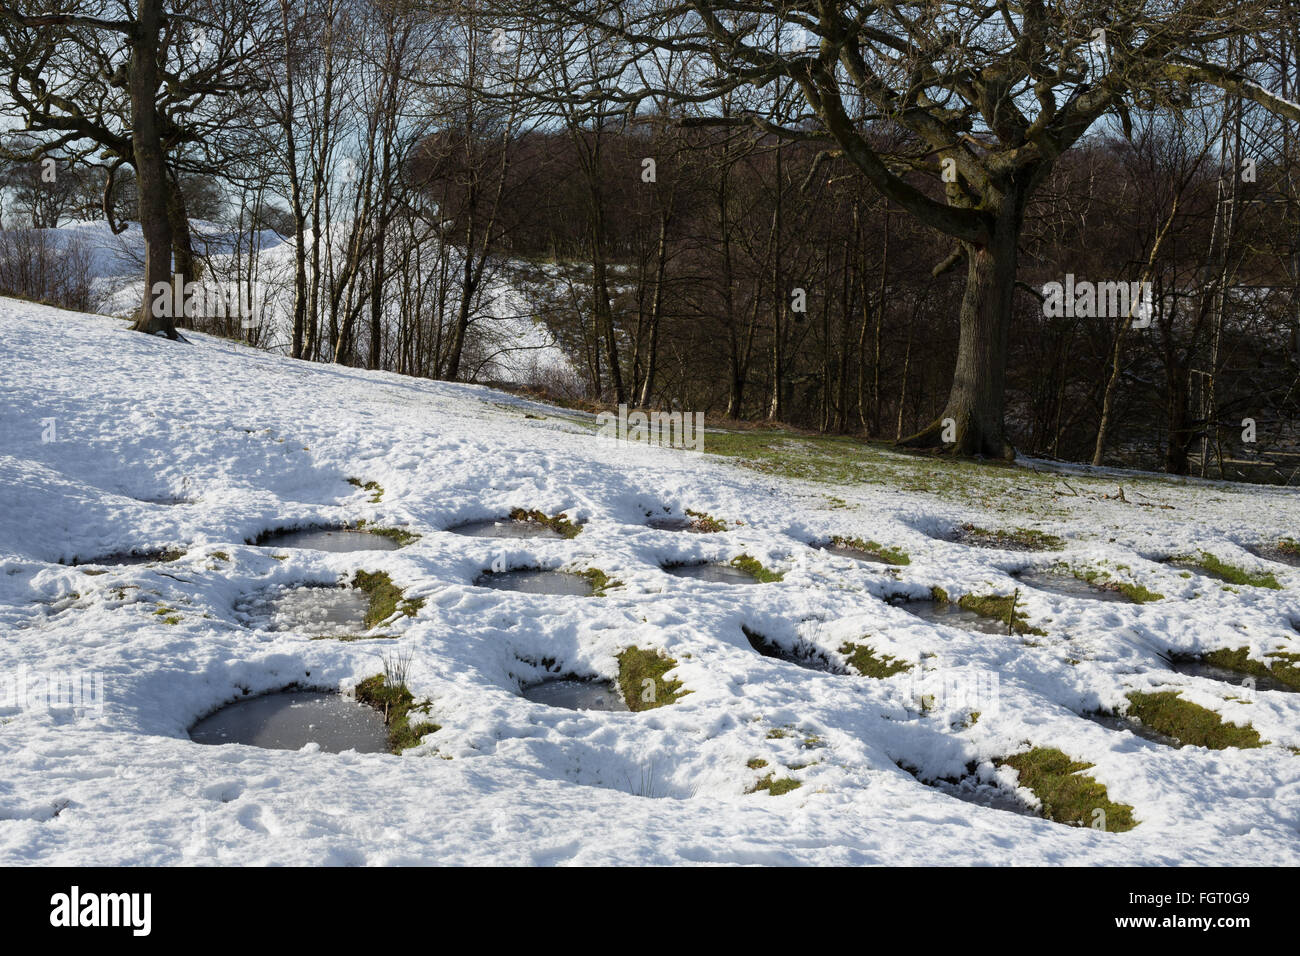 Defensive pits at Rough Castle Roman Fort on the Roman era Antonine Wall, in Falkirk, Scotland. - Stock Image